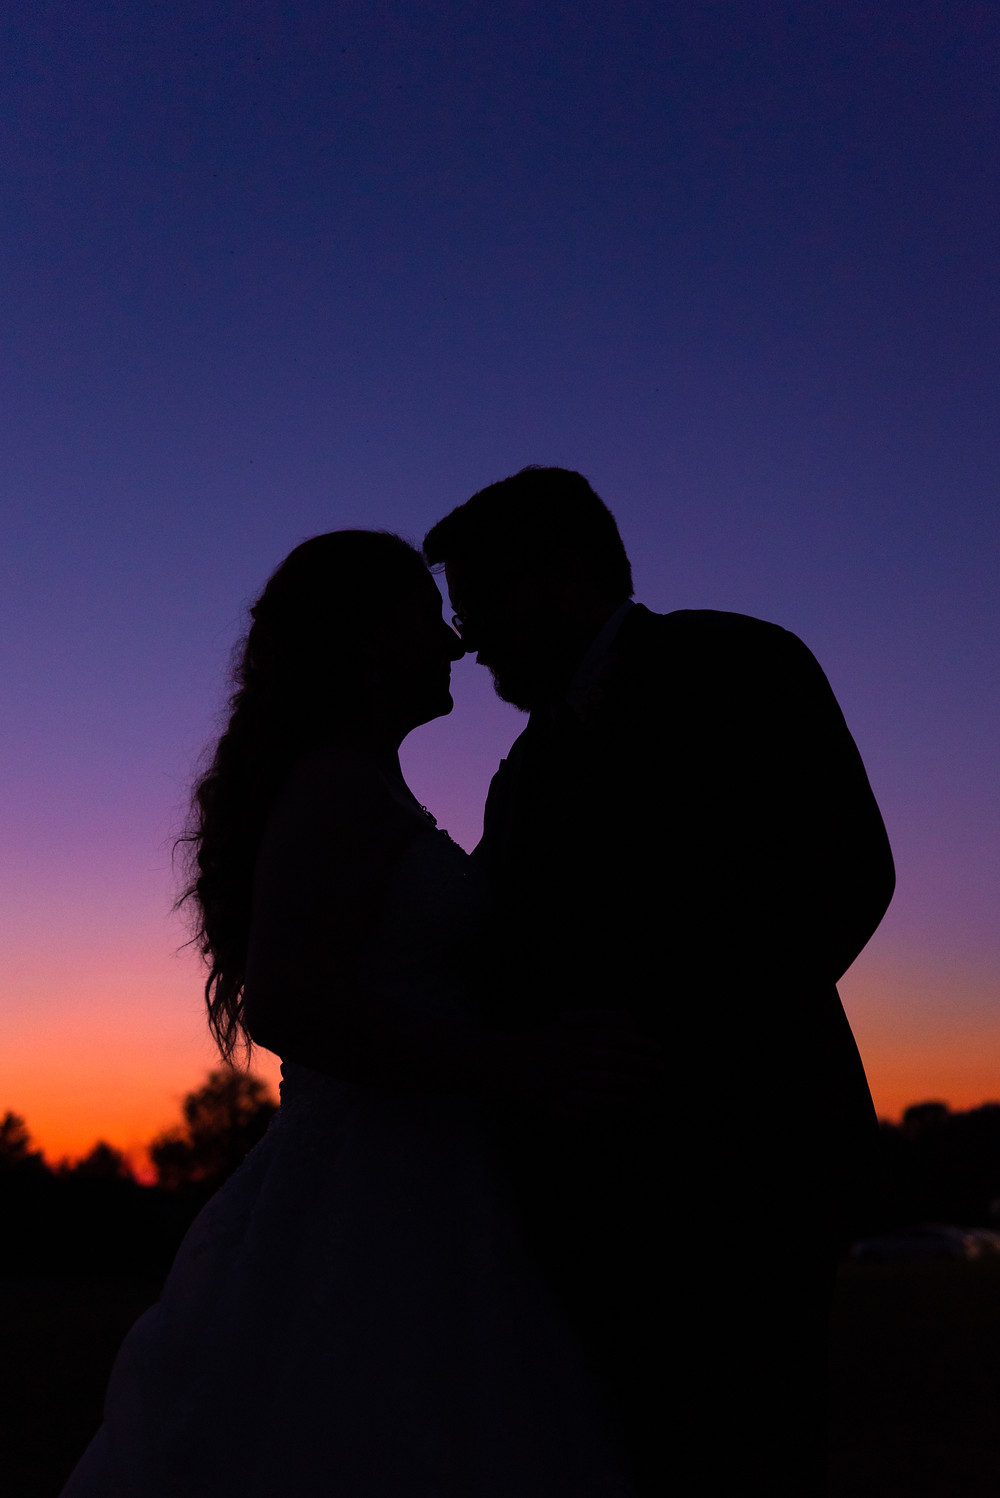 Sunset silhouette of bride and groom at drake's landing banquet center